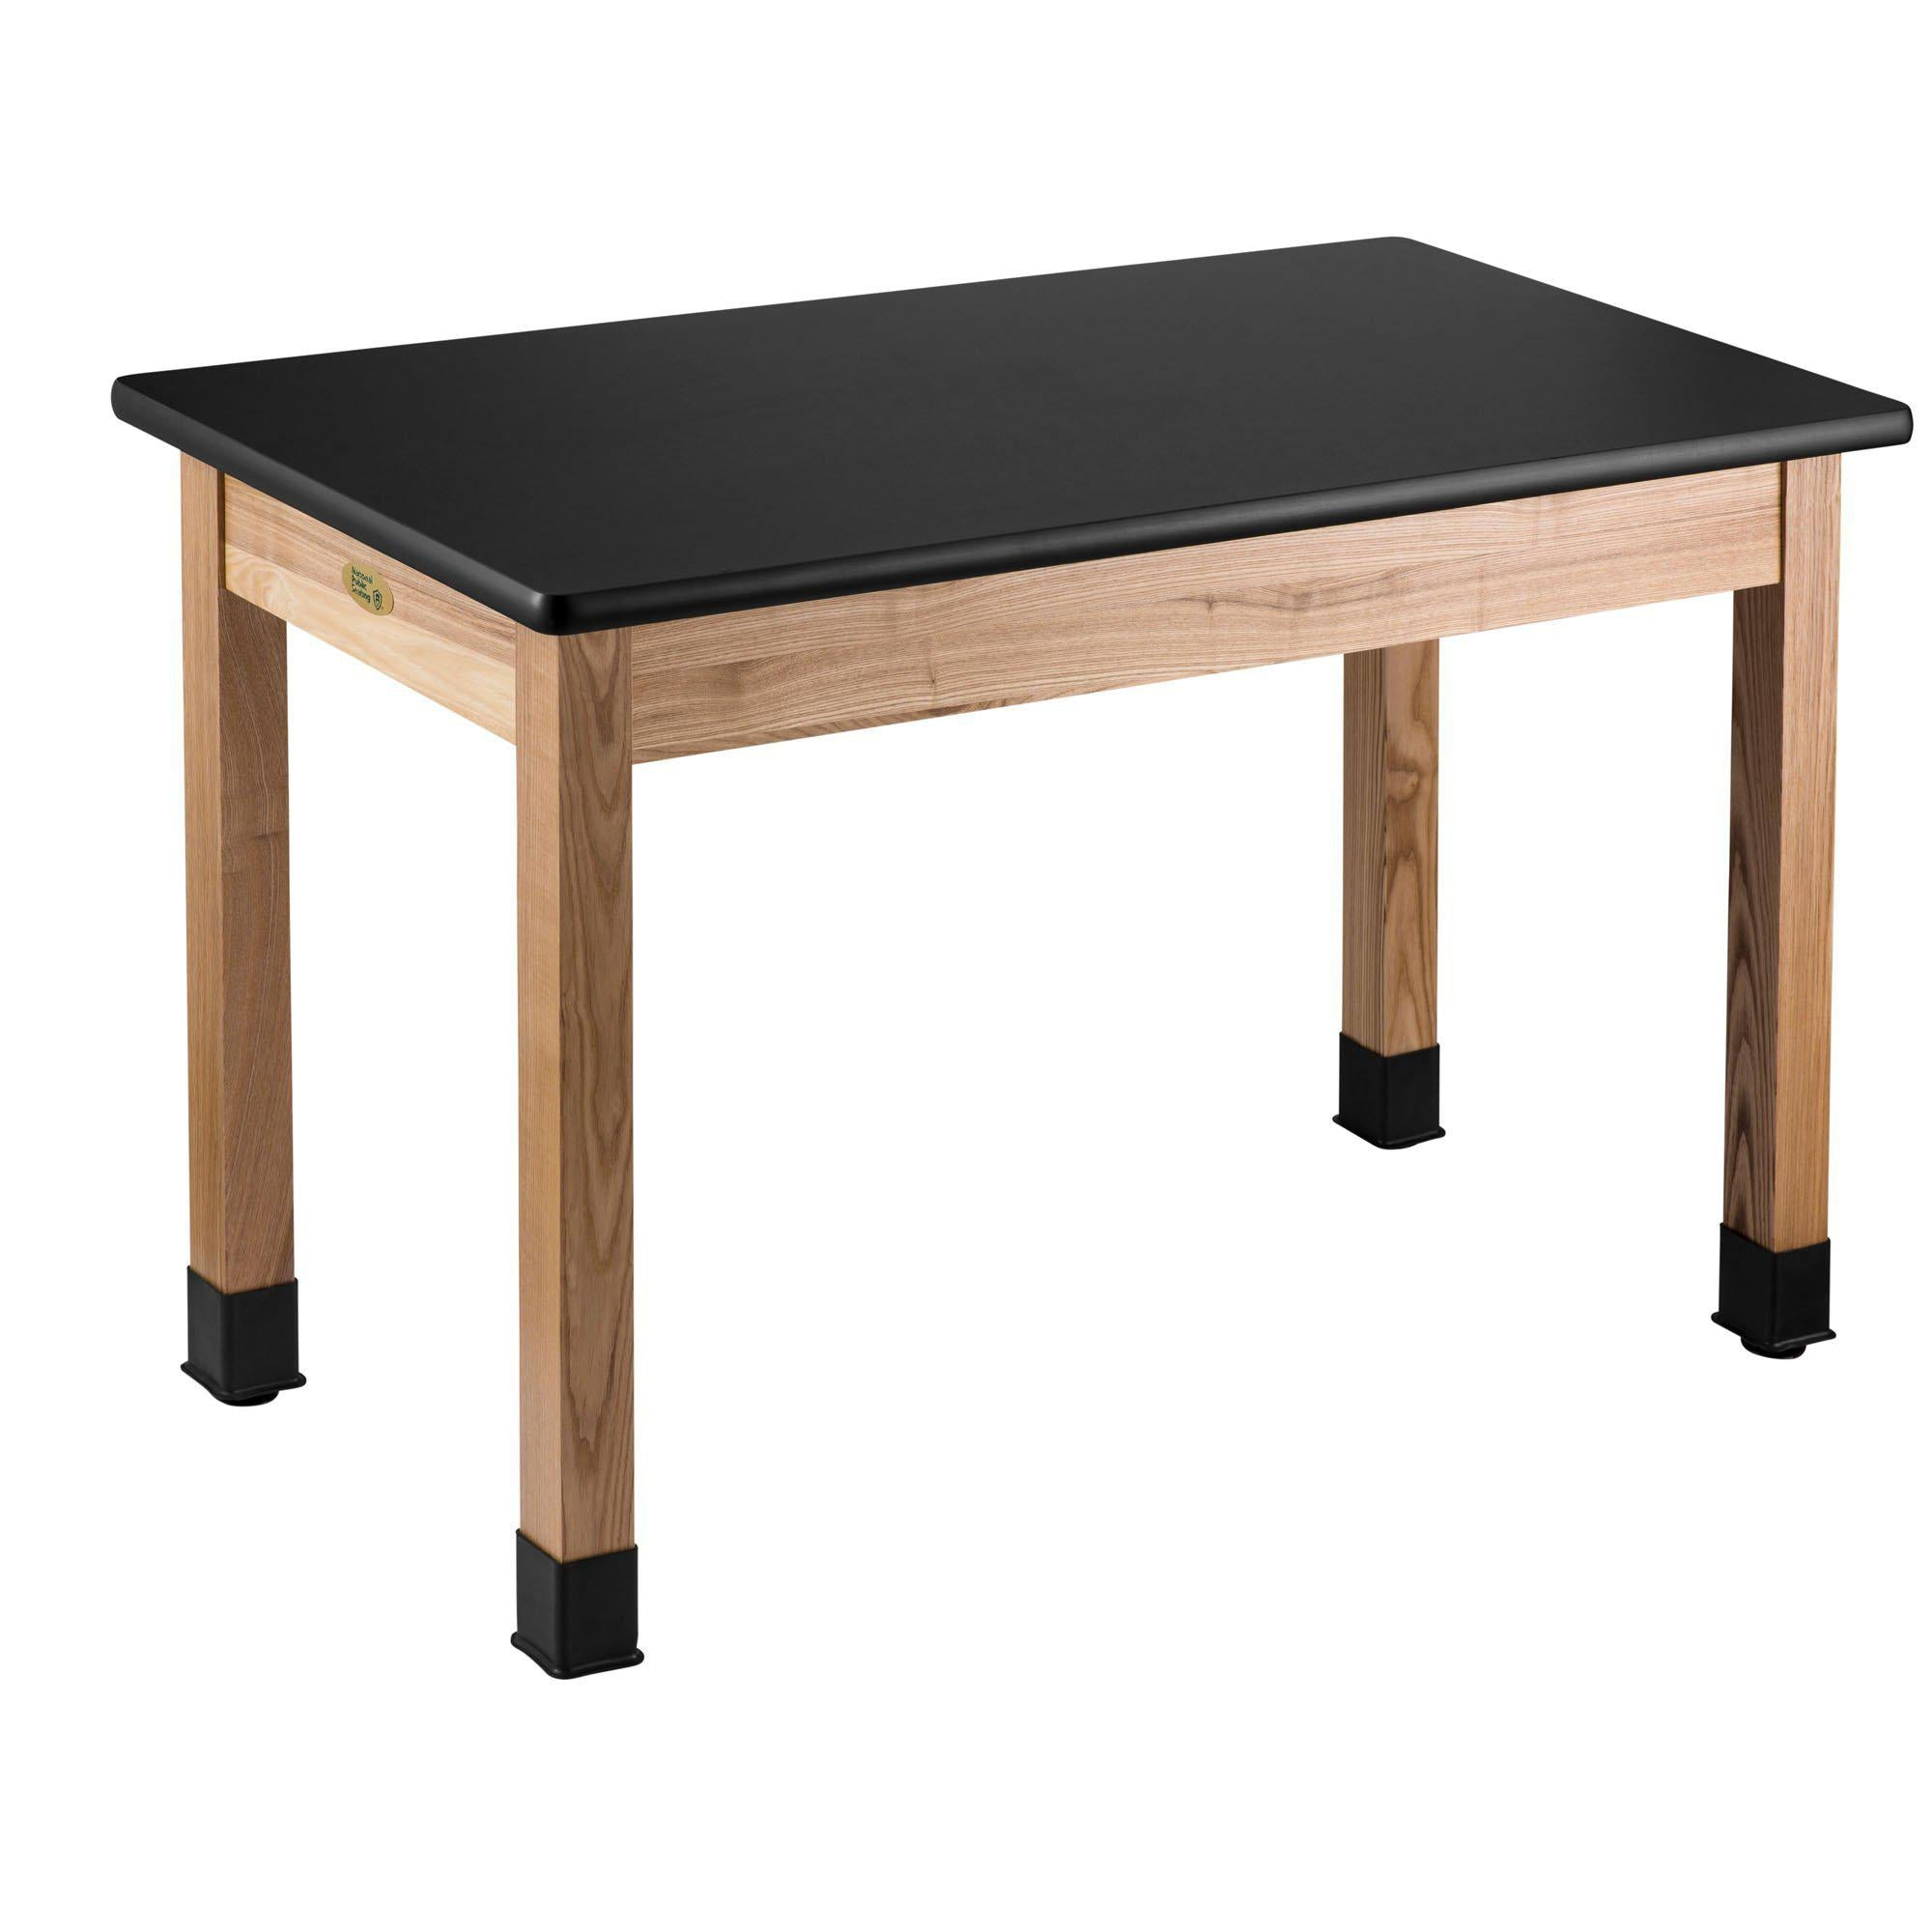 NPS Science Lab Tables with Solid Wood Legs, High Pressure Laminate Top